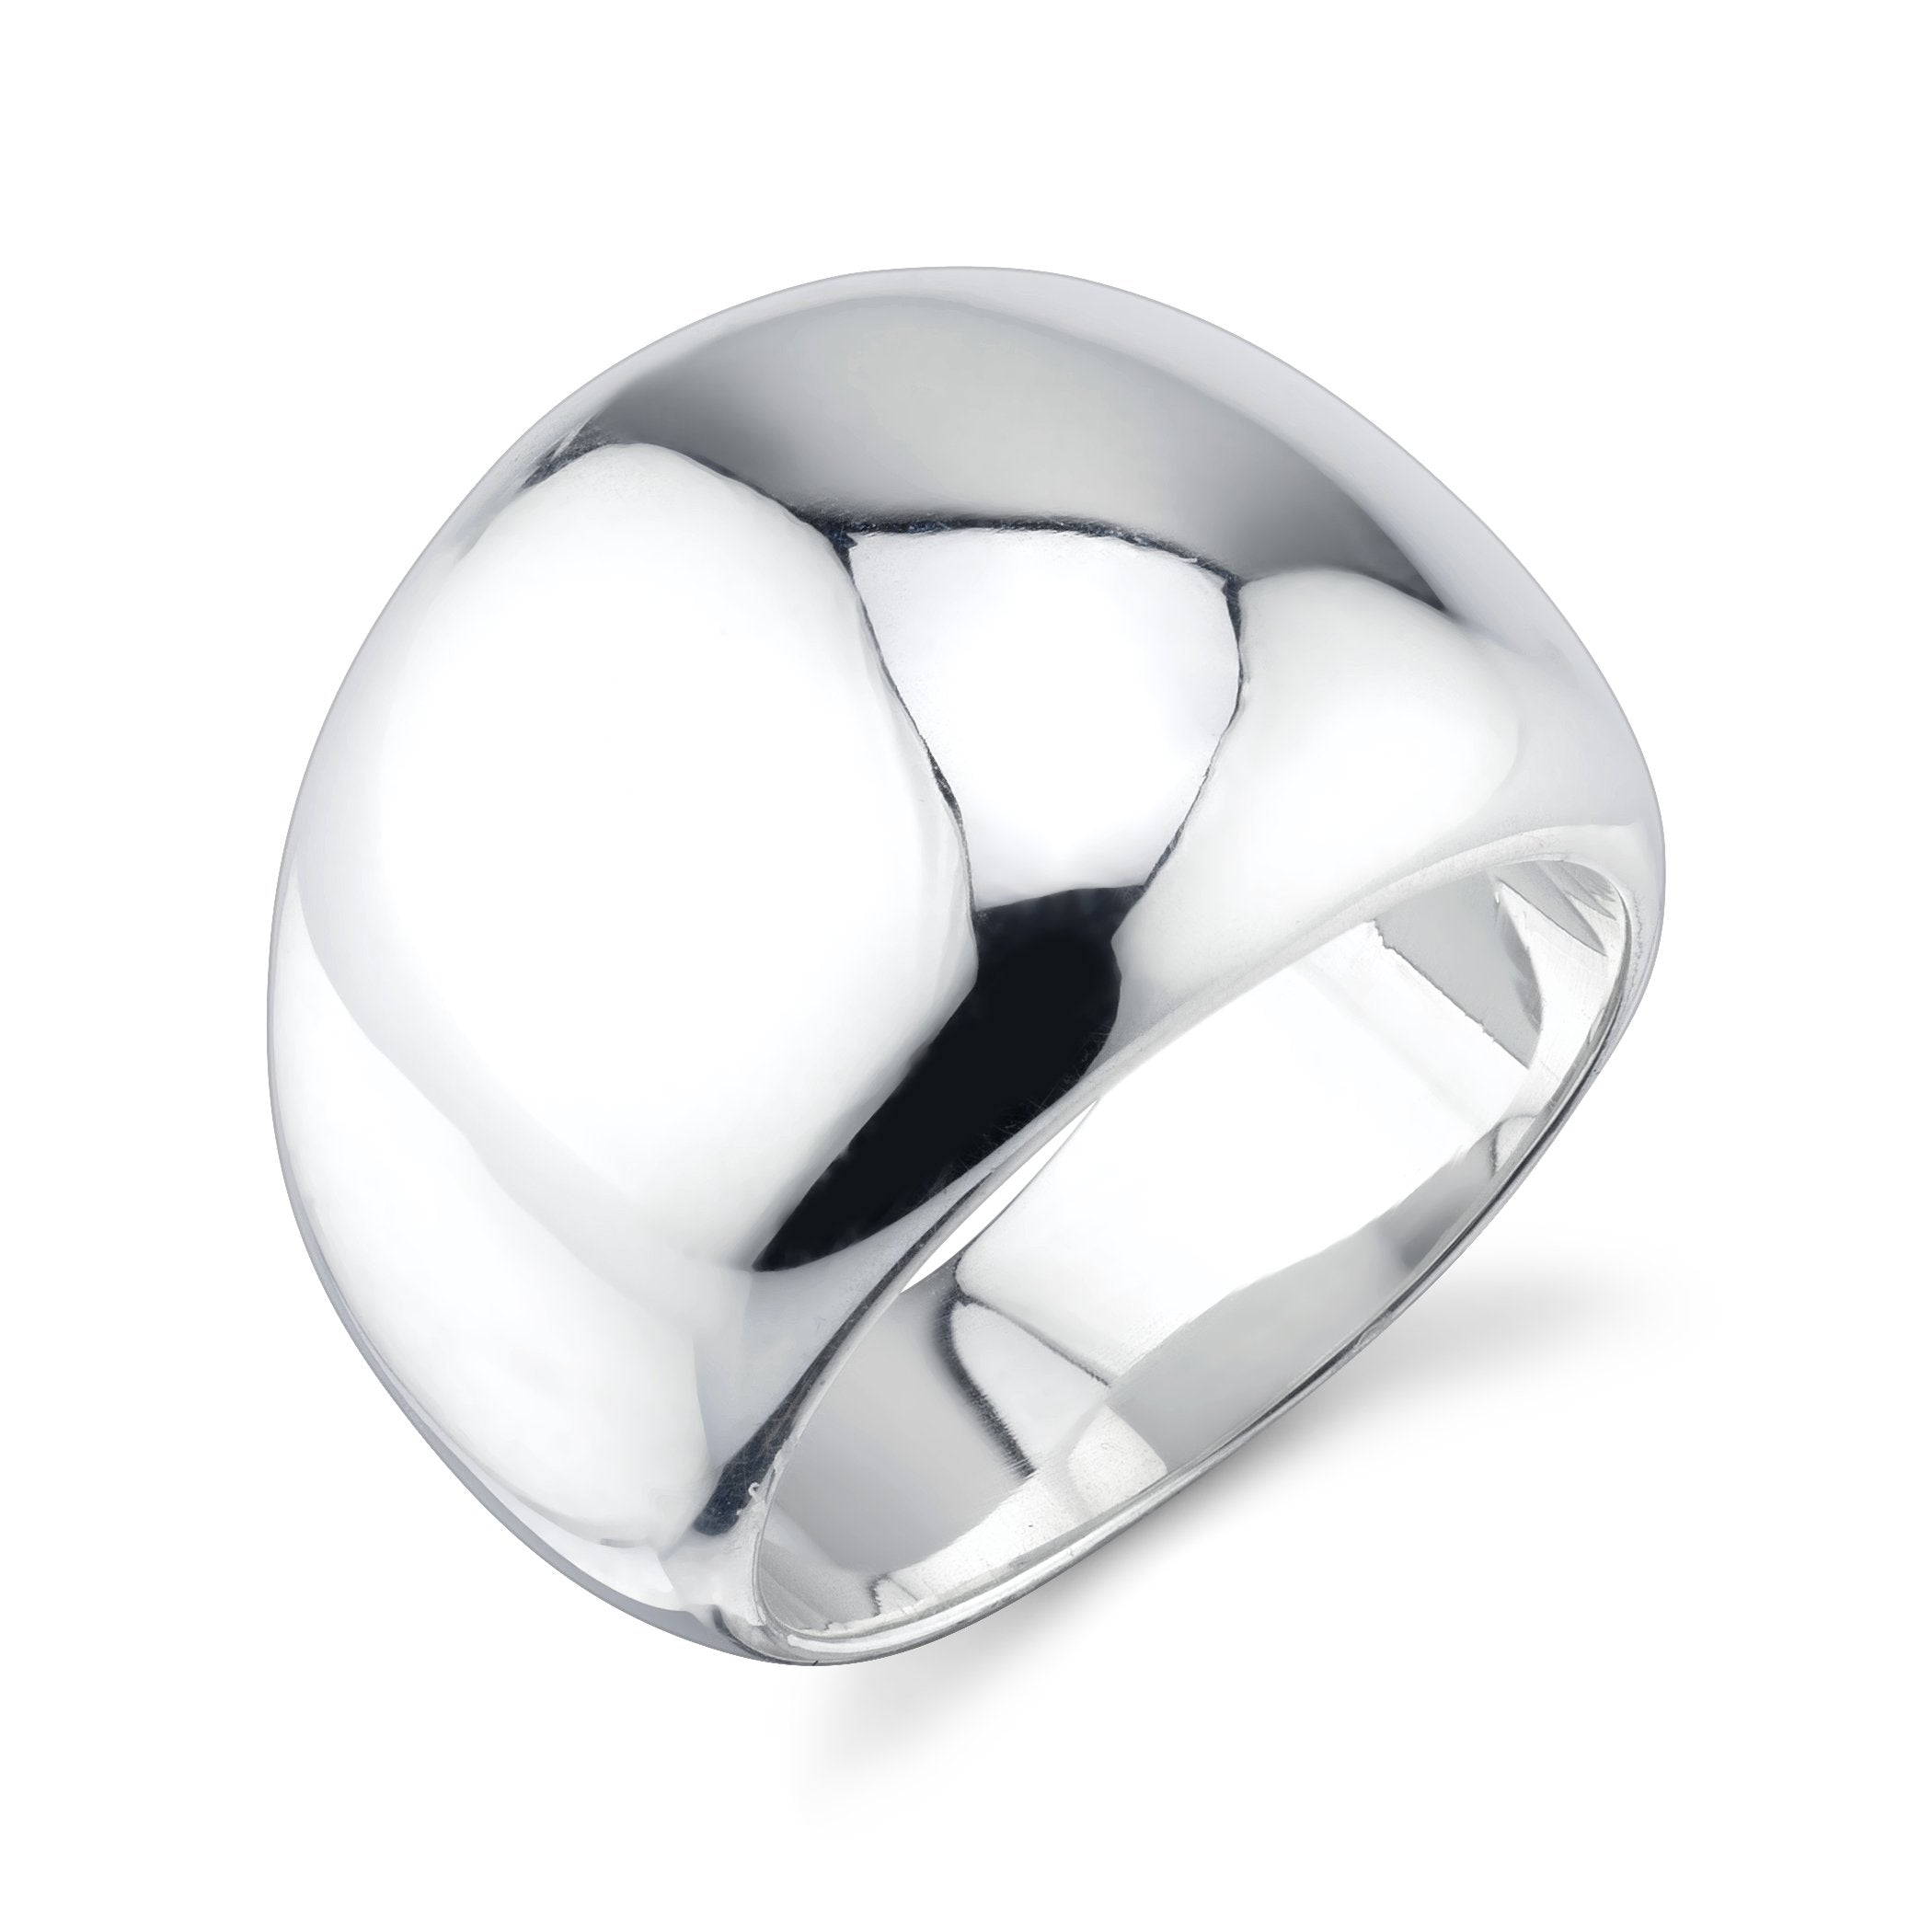 Gabriela Artigas Flat Balloon Ring